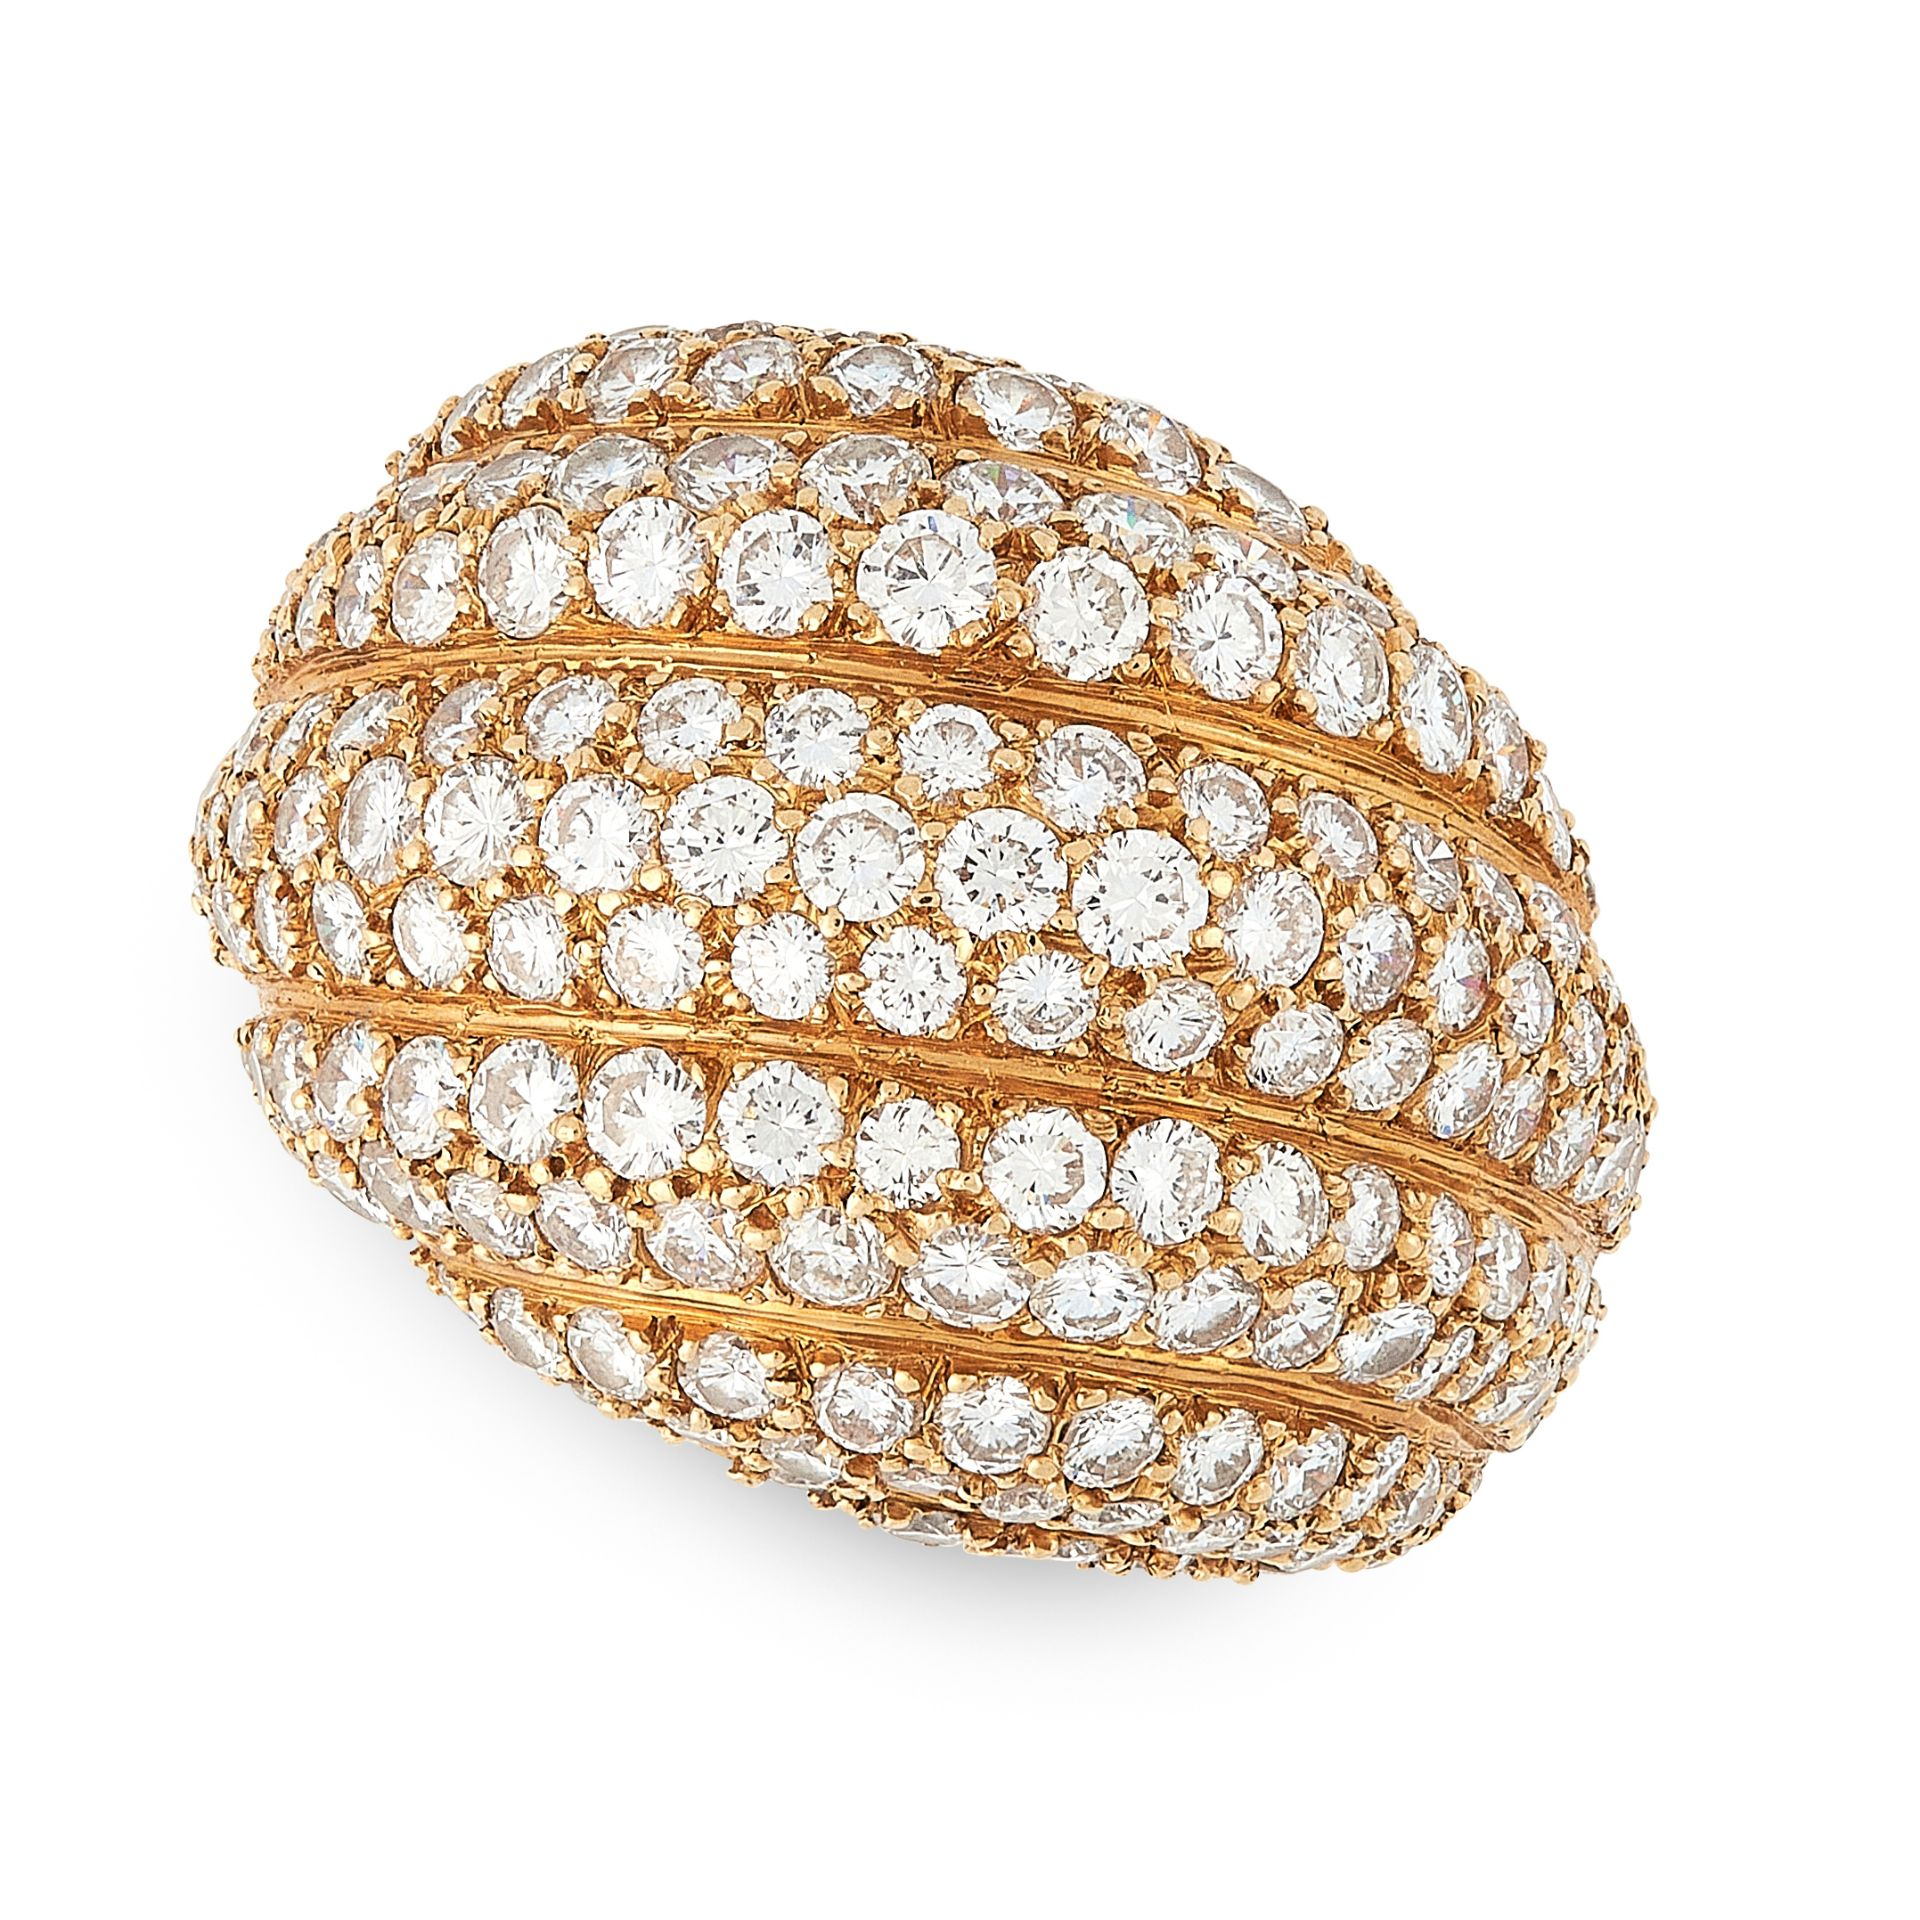 Los 31 - A DIAMOND BOMBE DRESS RING, CARTIER in 18ct yellow gold, of reeded bombe design, set allover with